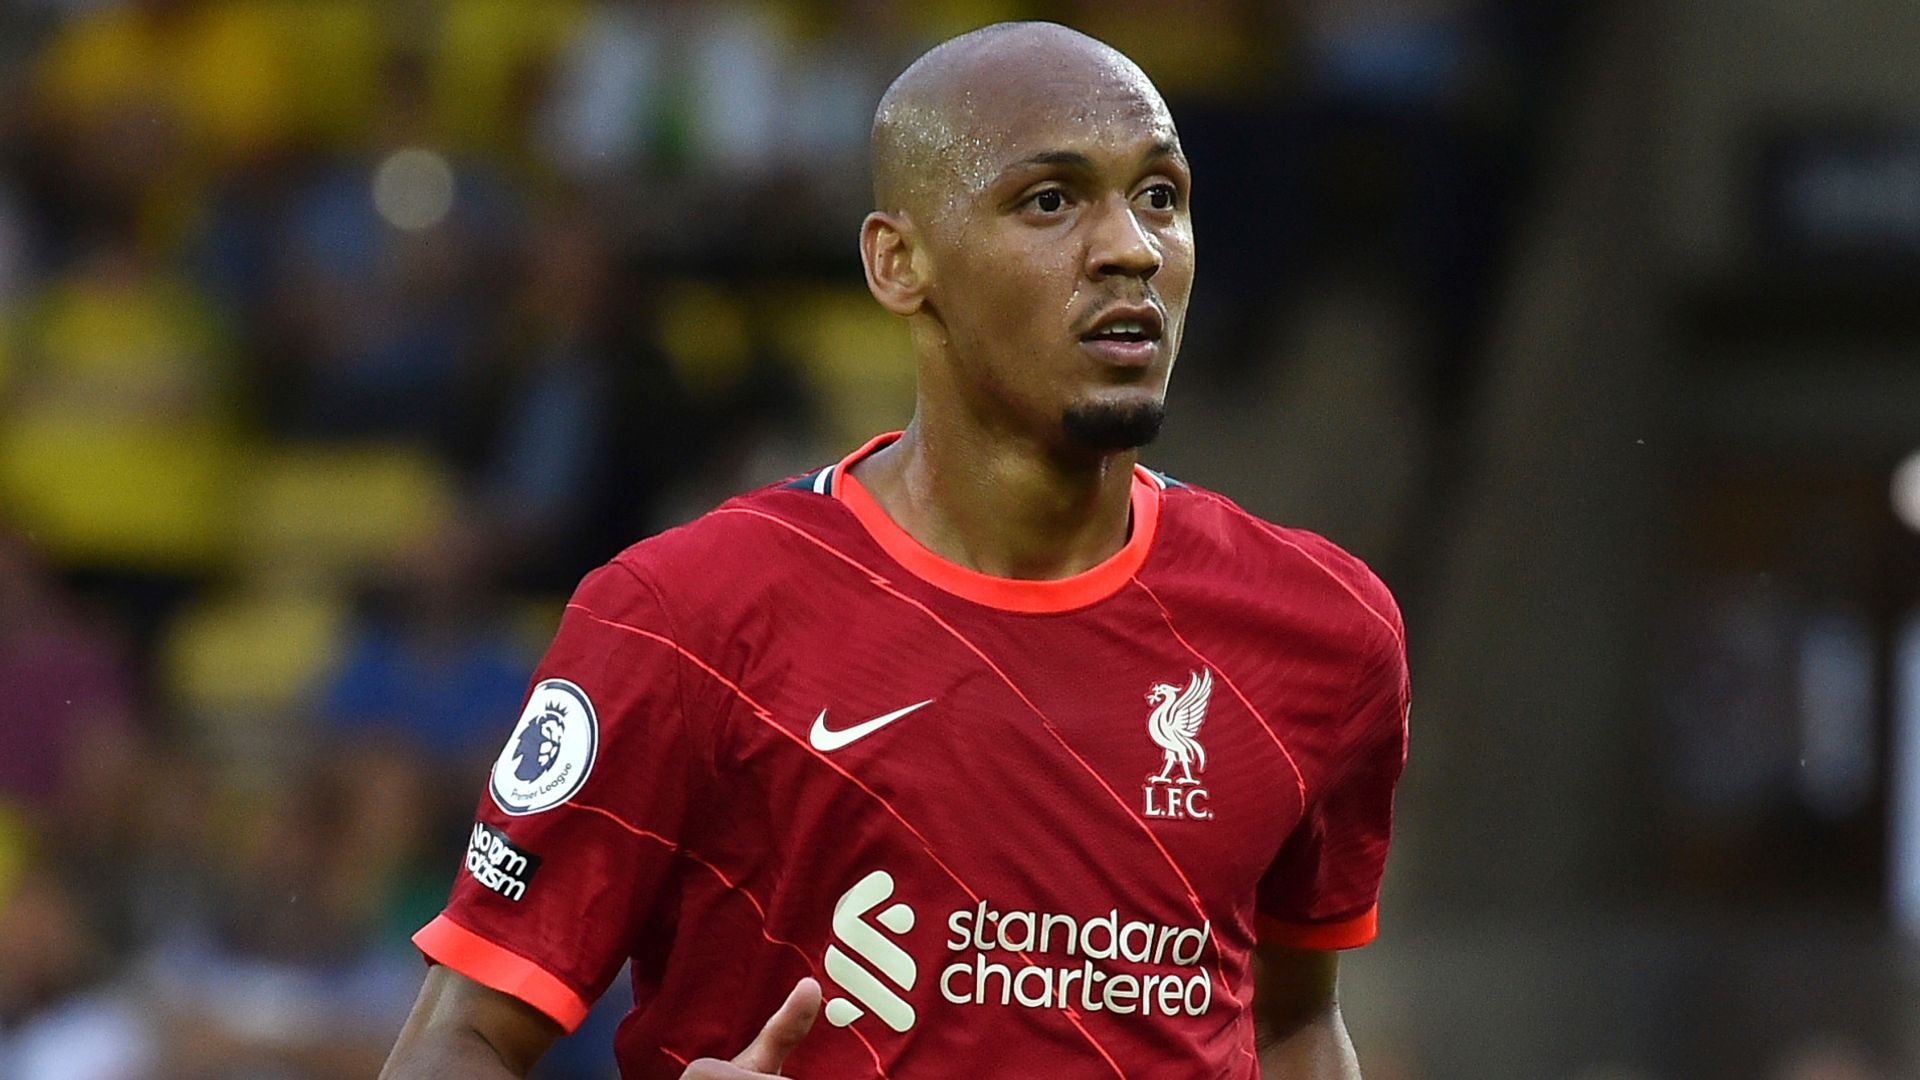 Fabinho and Alisson expected to miss Watford match